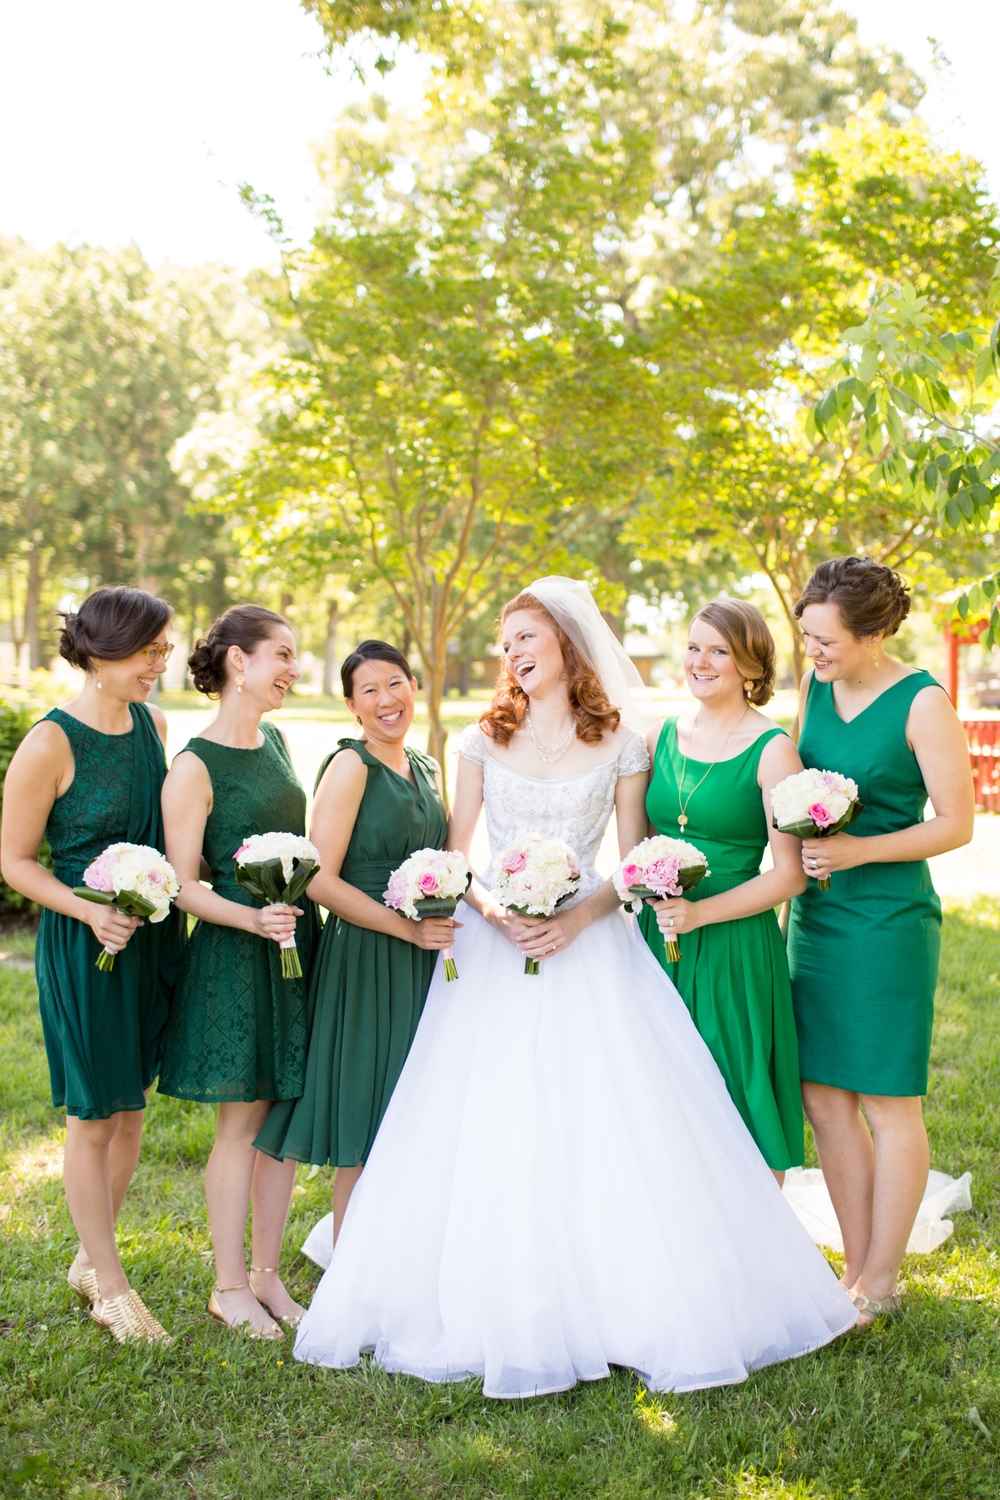 2-Compton Wedding Bridal Party-127.jpg